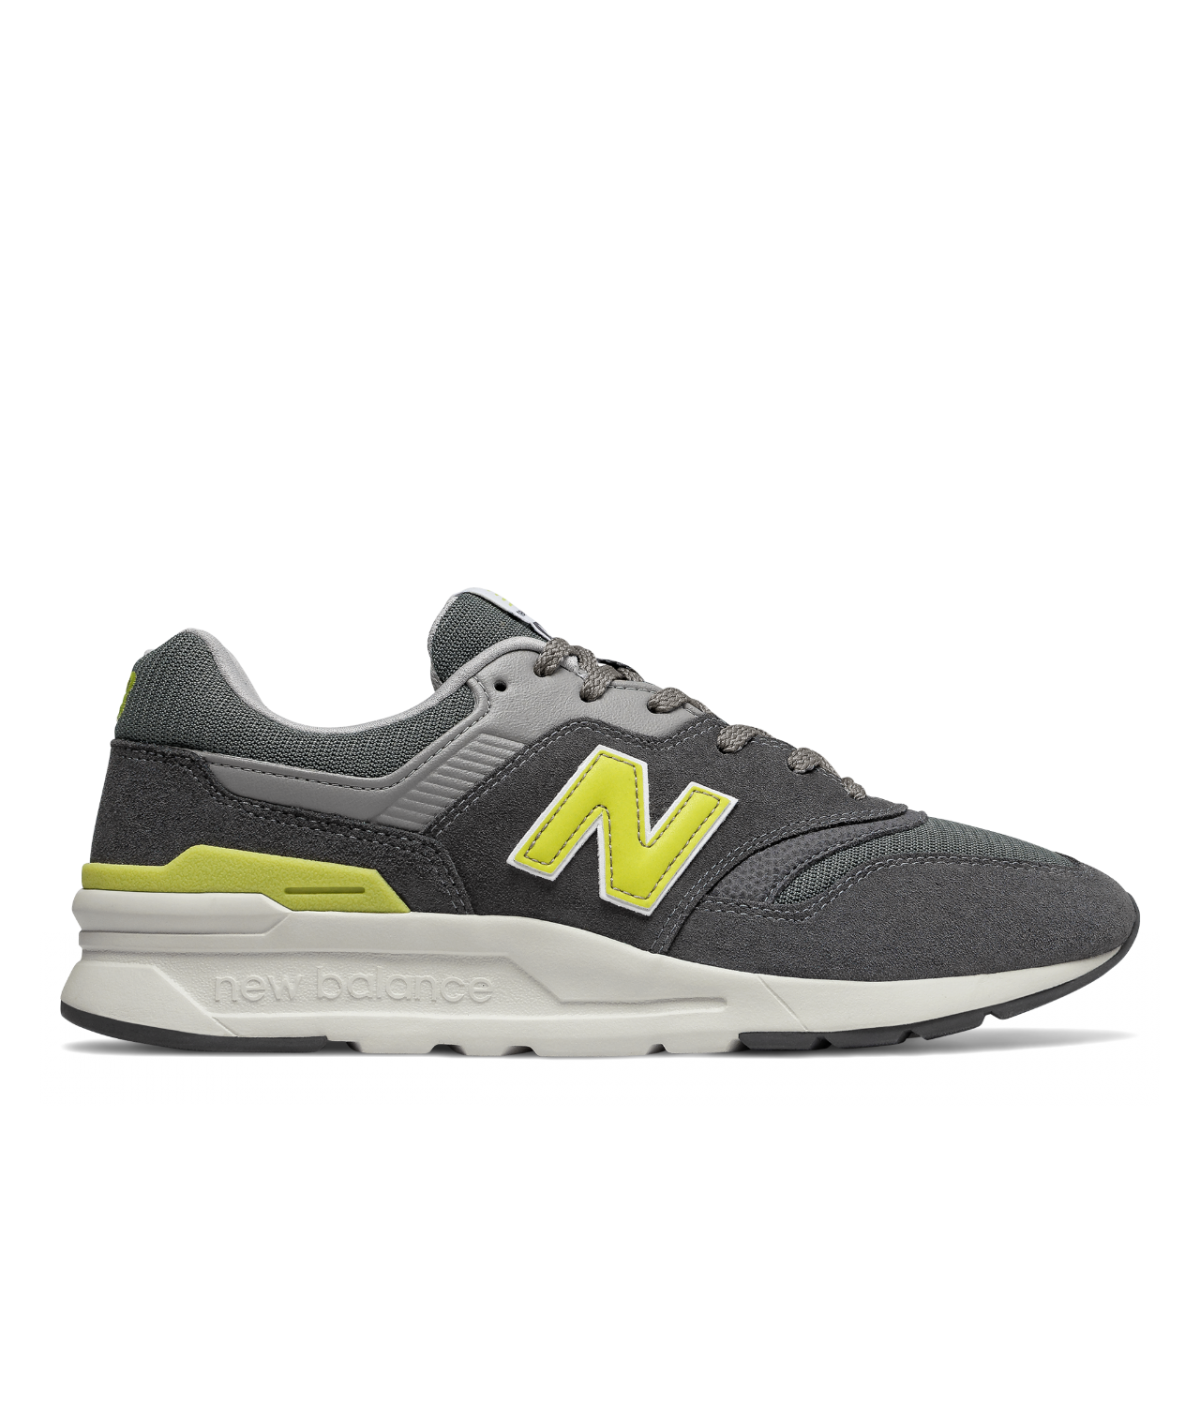 New Balance 997 HDJ Sneaker grey man